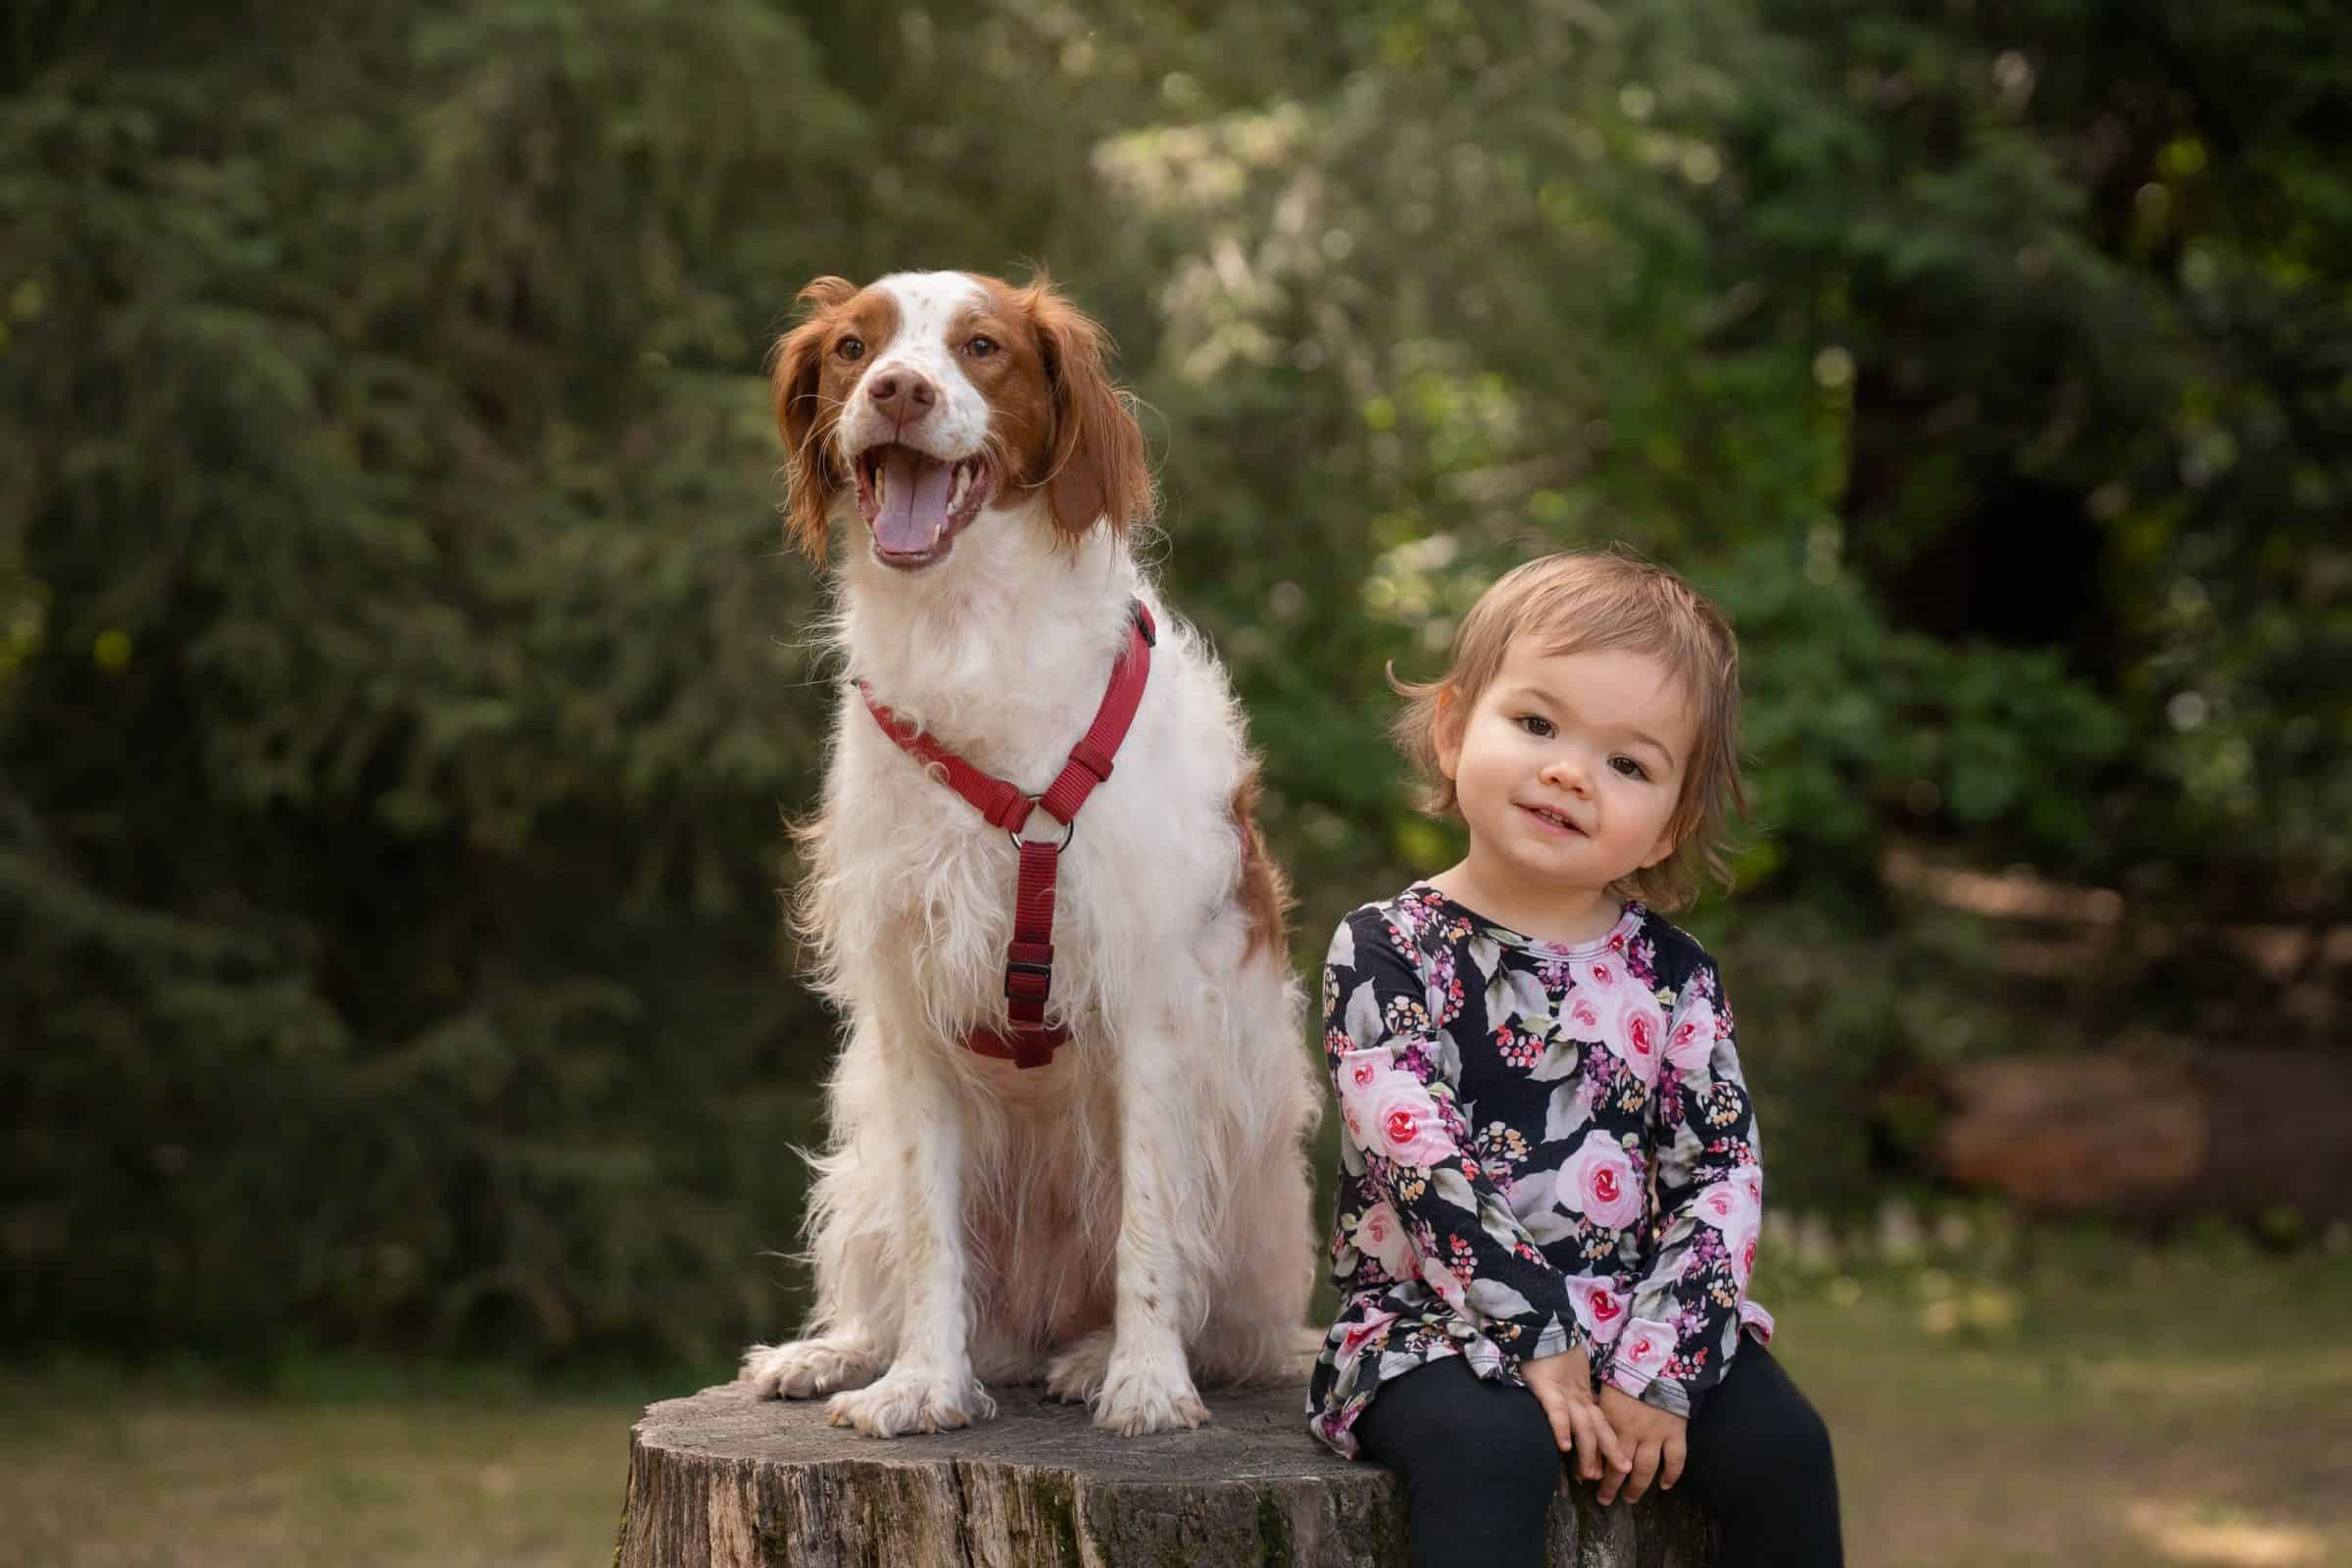 little girl sitting on stump posing with her dog